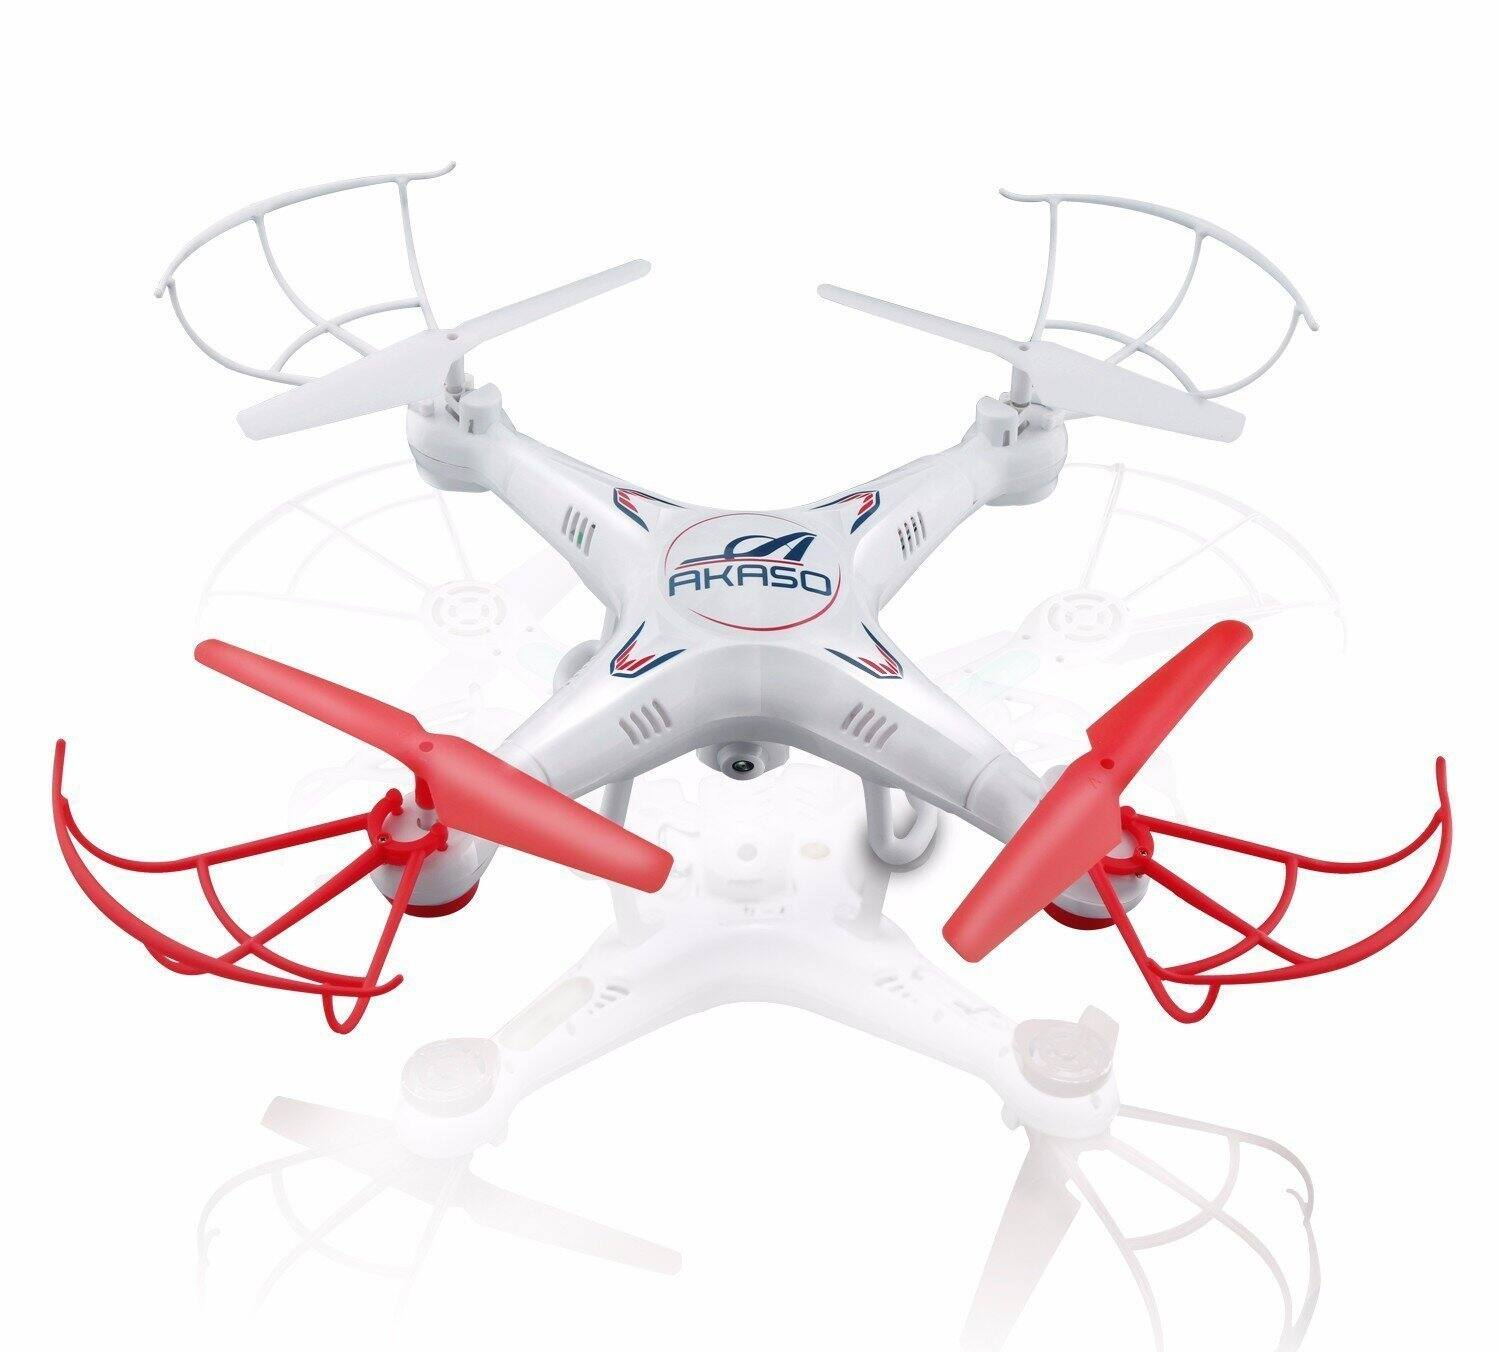 Akaso X5C 4-Channel 2.4-GHz 6-Axis Gyro Headless 360-Degree 3D Rolling Mode RC Drone Quadcopter with HD Camera for $21 @ Amazon